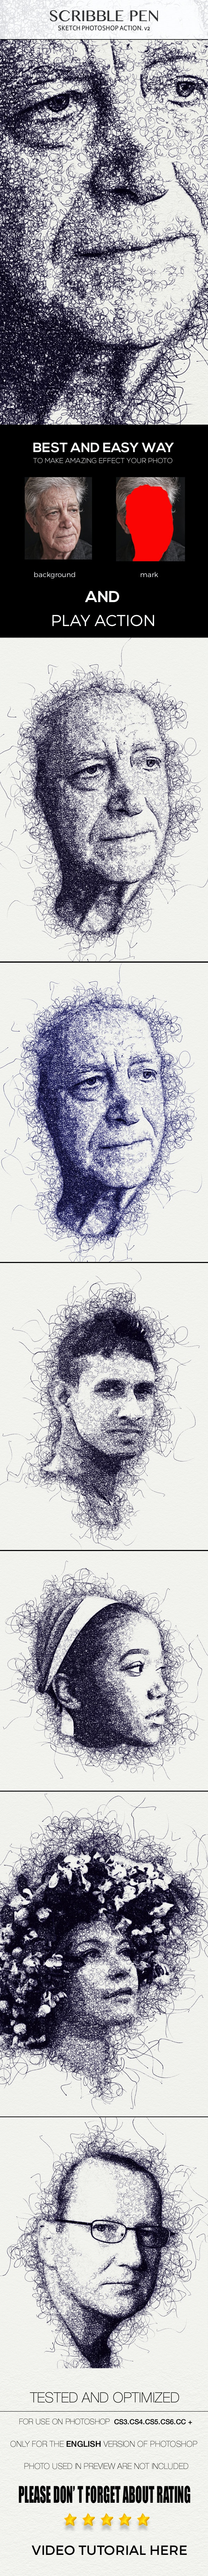 Scribble Pen Sketch Photoshop Action v2 - Photo Effects Actions